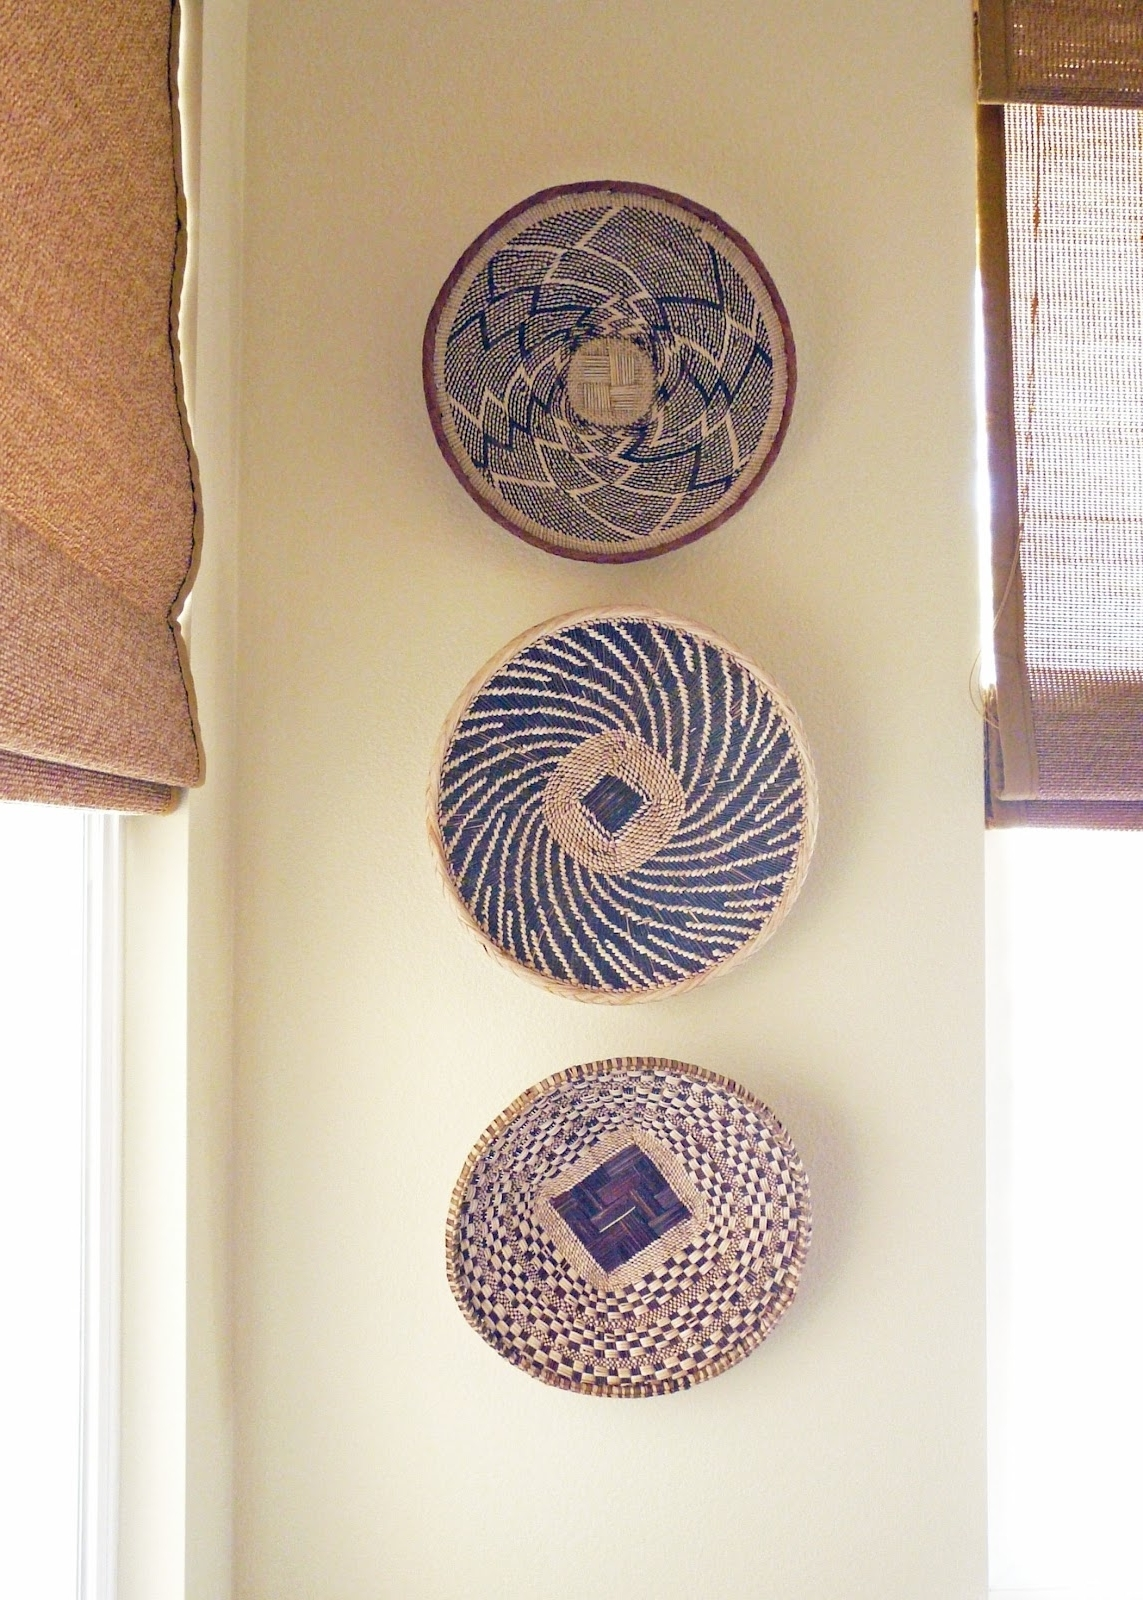 Wall Decor: Good Look Baskets As Wall Decor Woven Wall Baskets Within Most Recent African Wall Accents (View 4 of 15)